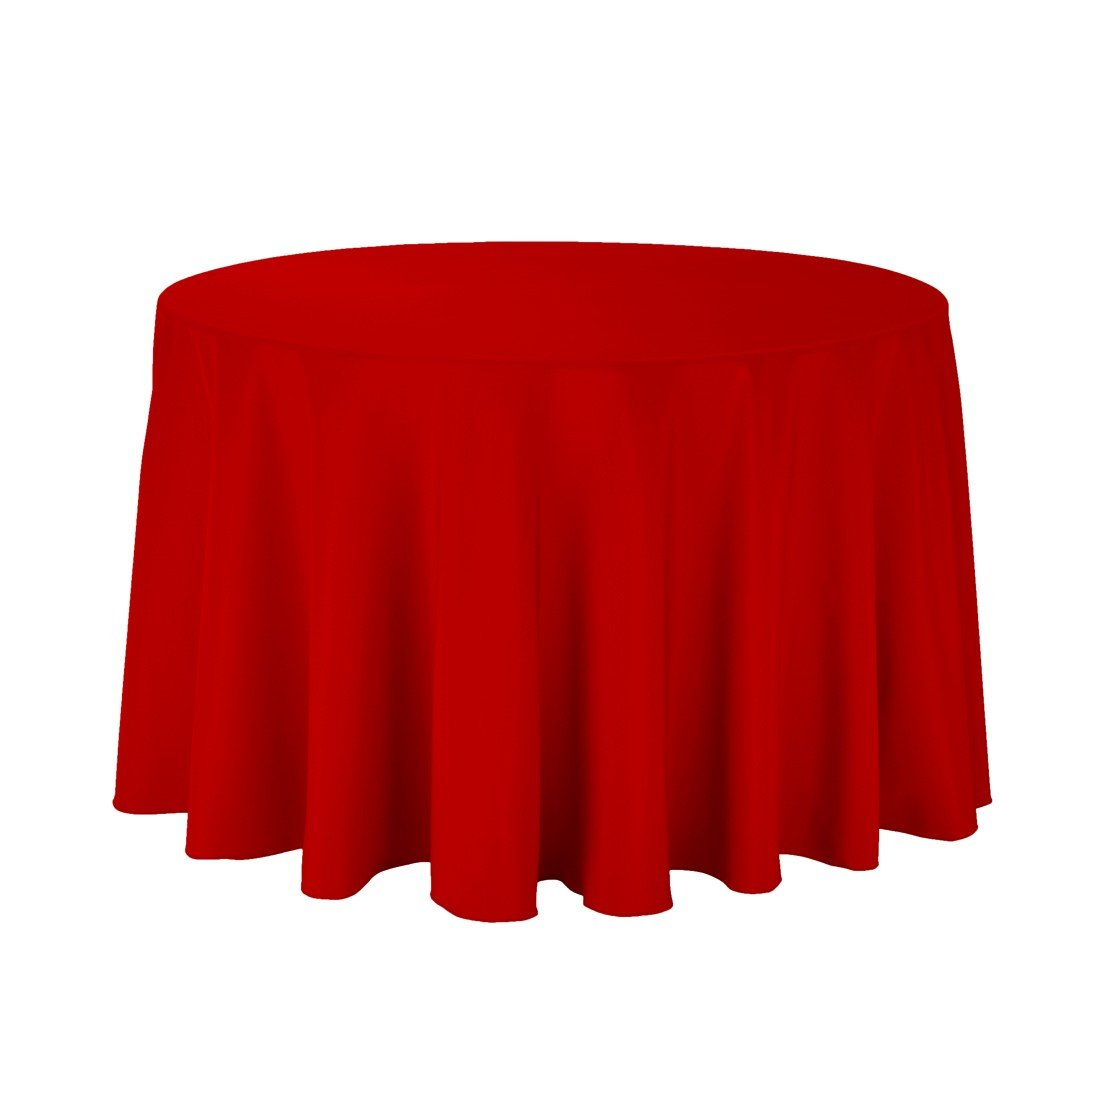 Craft and Party - 10 pcs Round Tablecloth for Home, Party, Wedding or Restaurant Use. (108'' Round Red) by Craft & Party